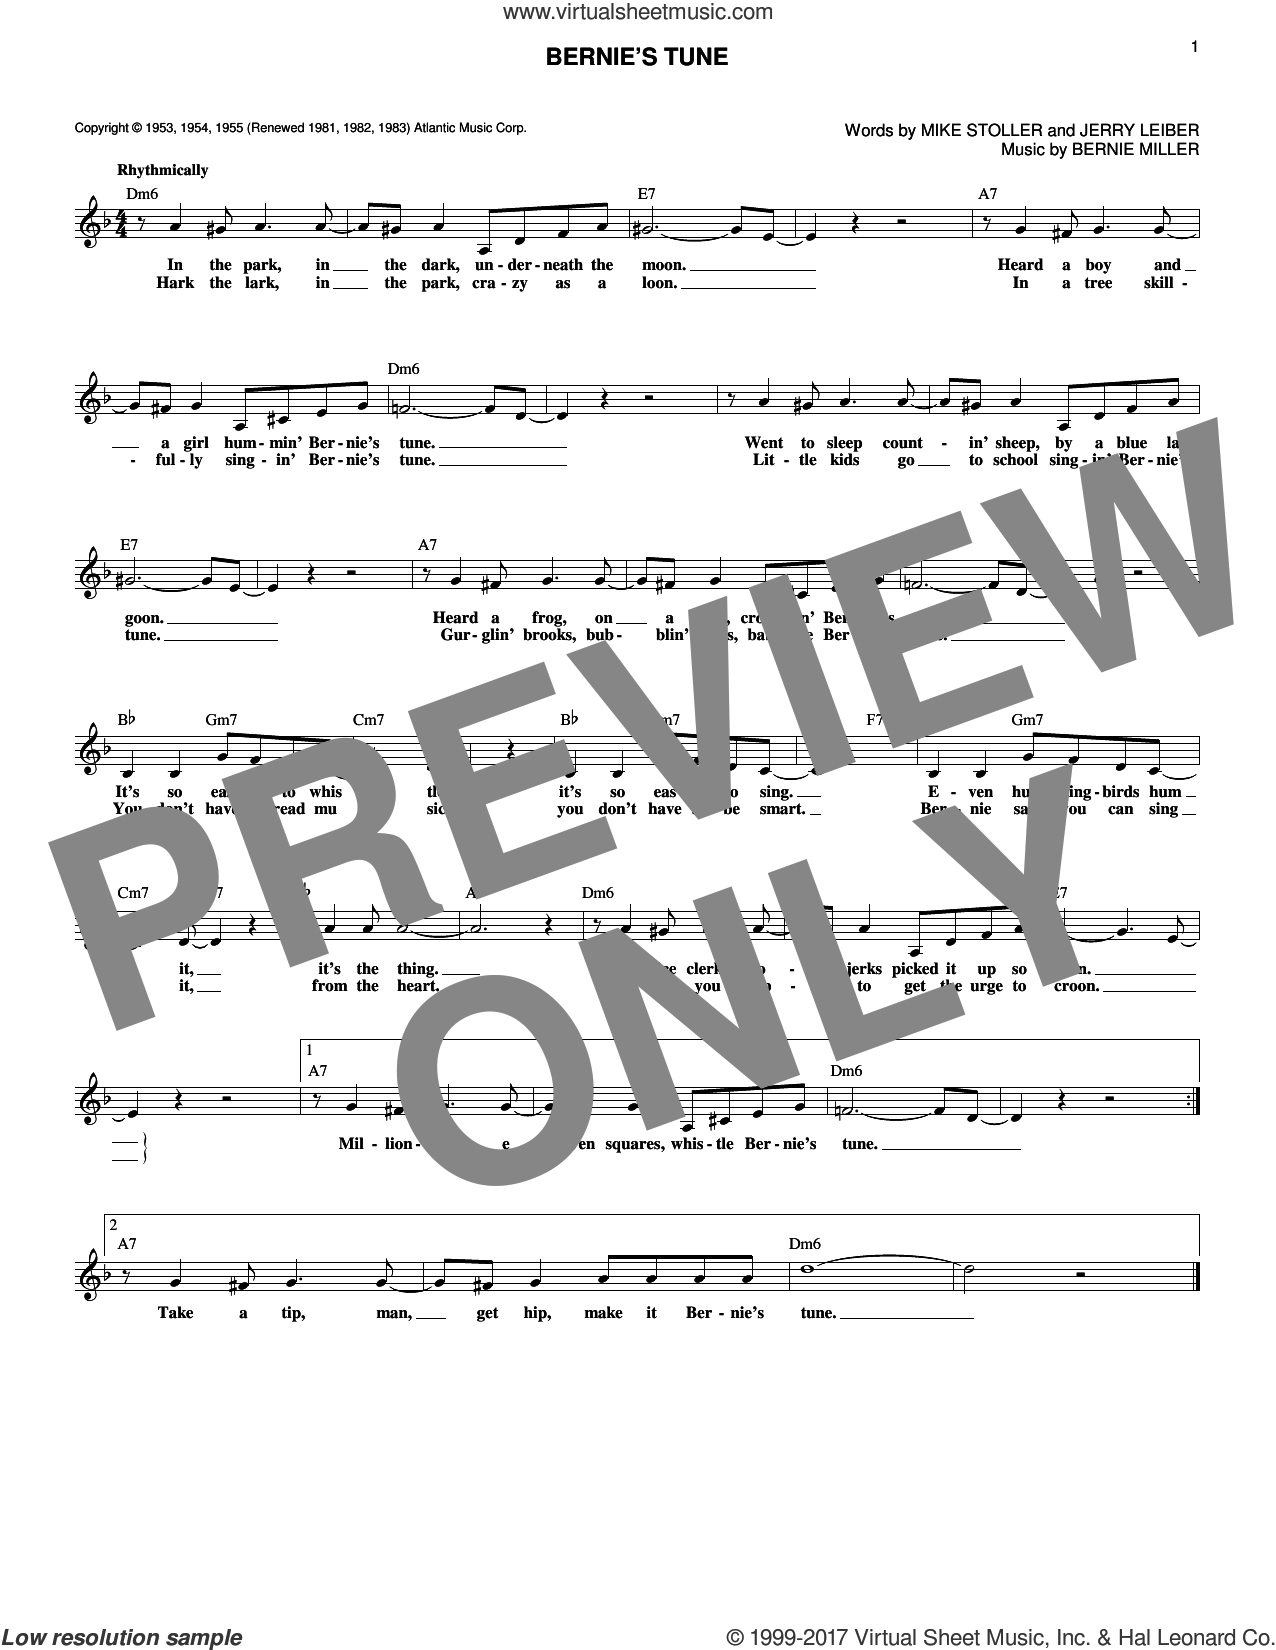 Bernie's Tune sheet music for voice and other instruments (fake book) by Bernie Miller, Jerry Lieber and Mike Stoller, intermediate skill level